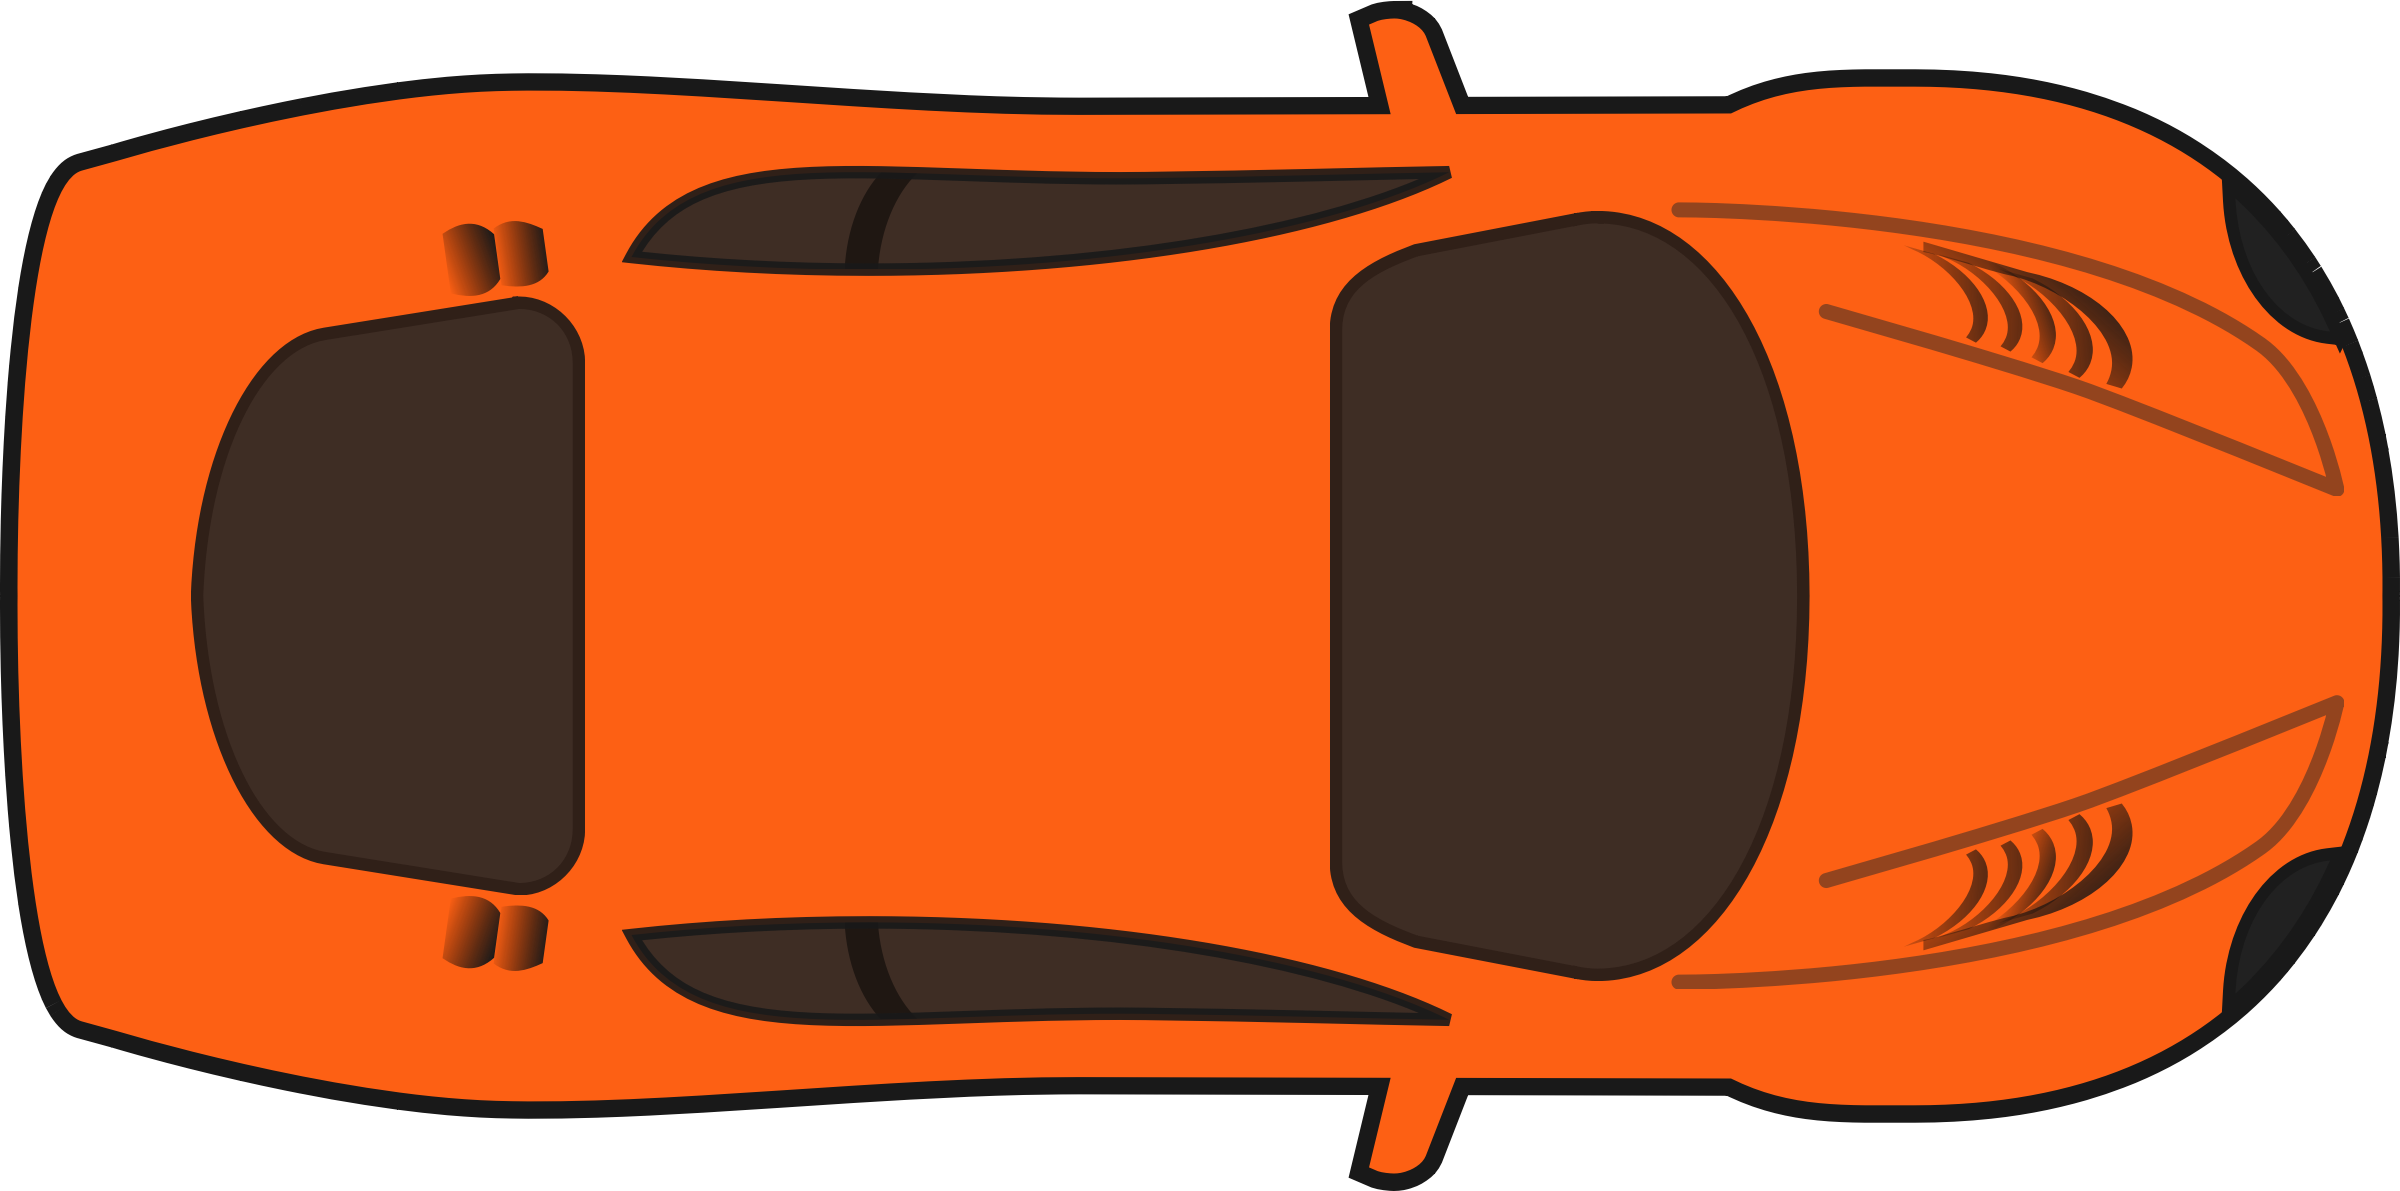 A car clipart png library download Sports Car Clipart at GetDrawings.com | Free for personal use Sports ... png library download